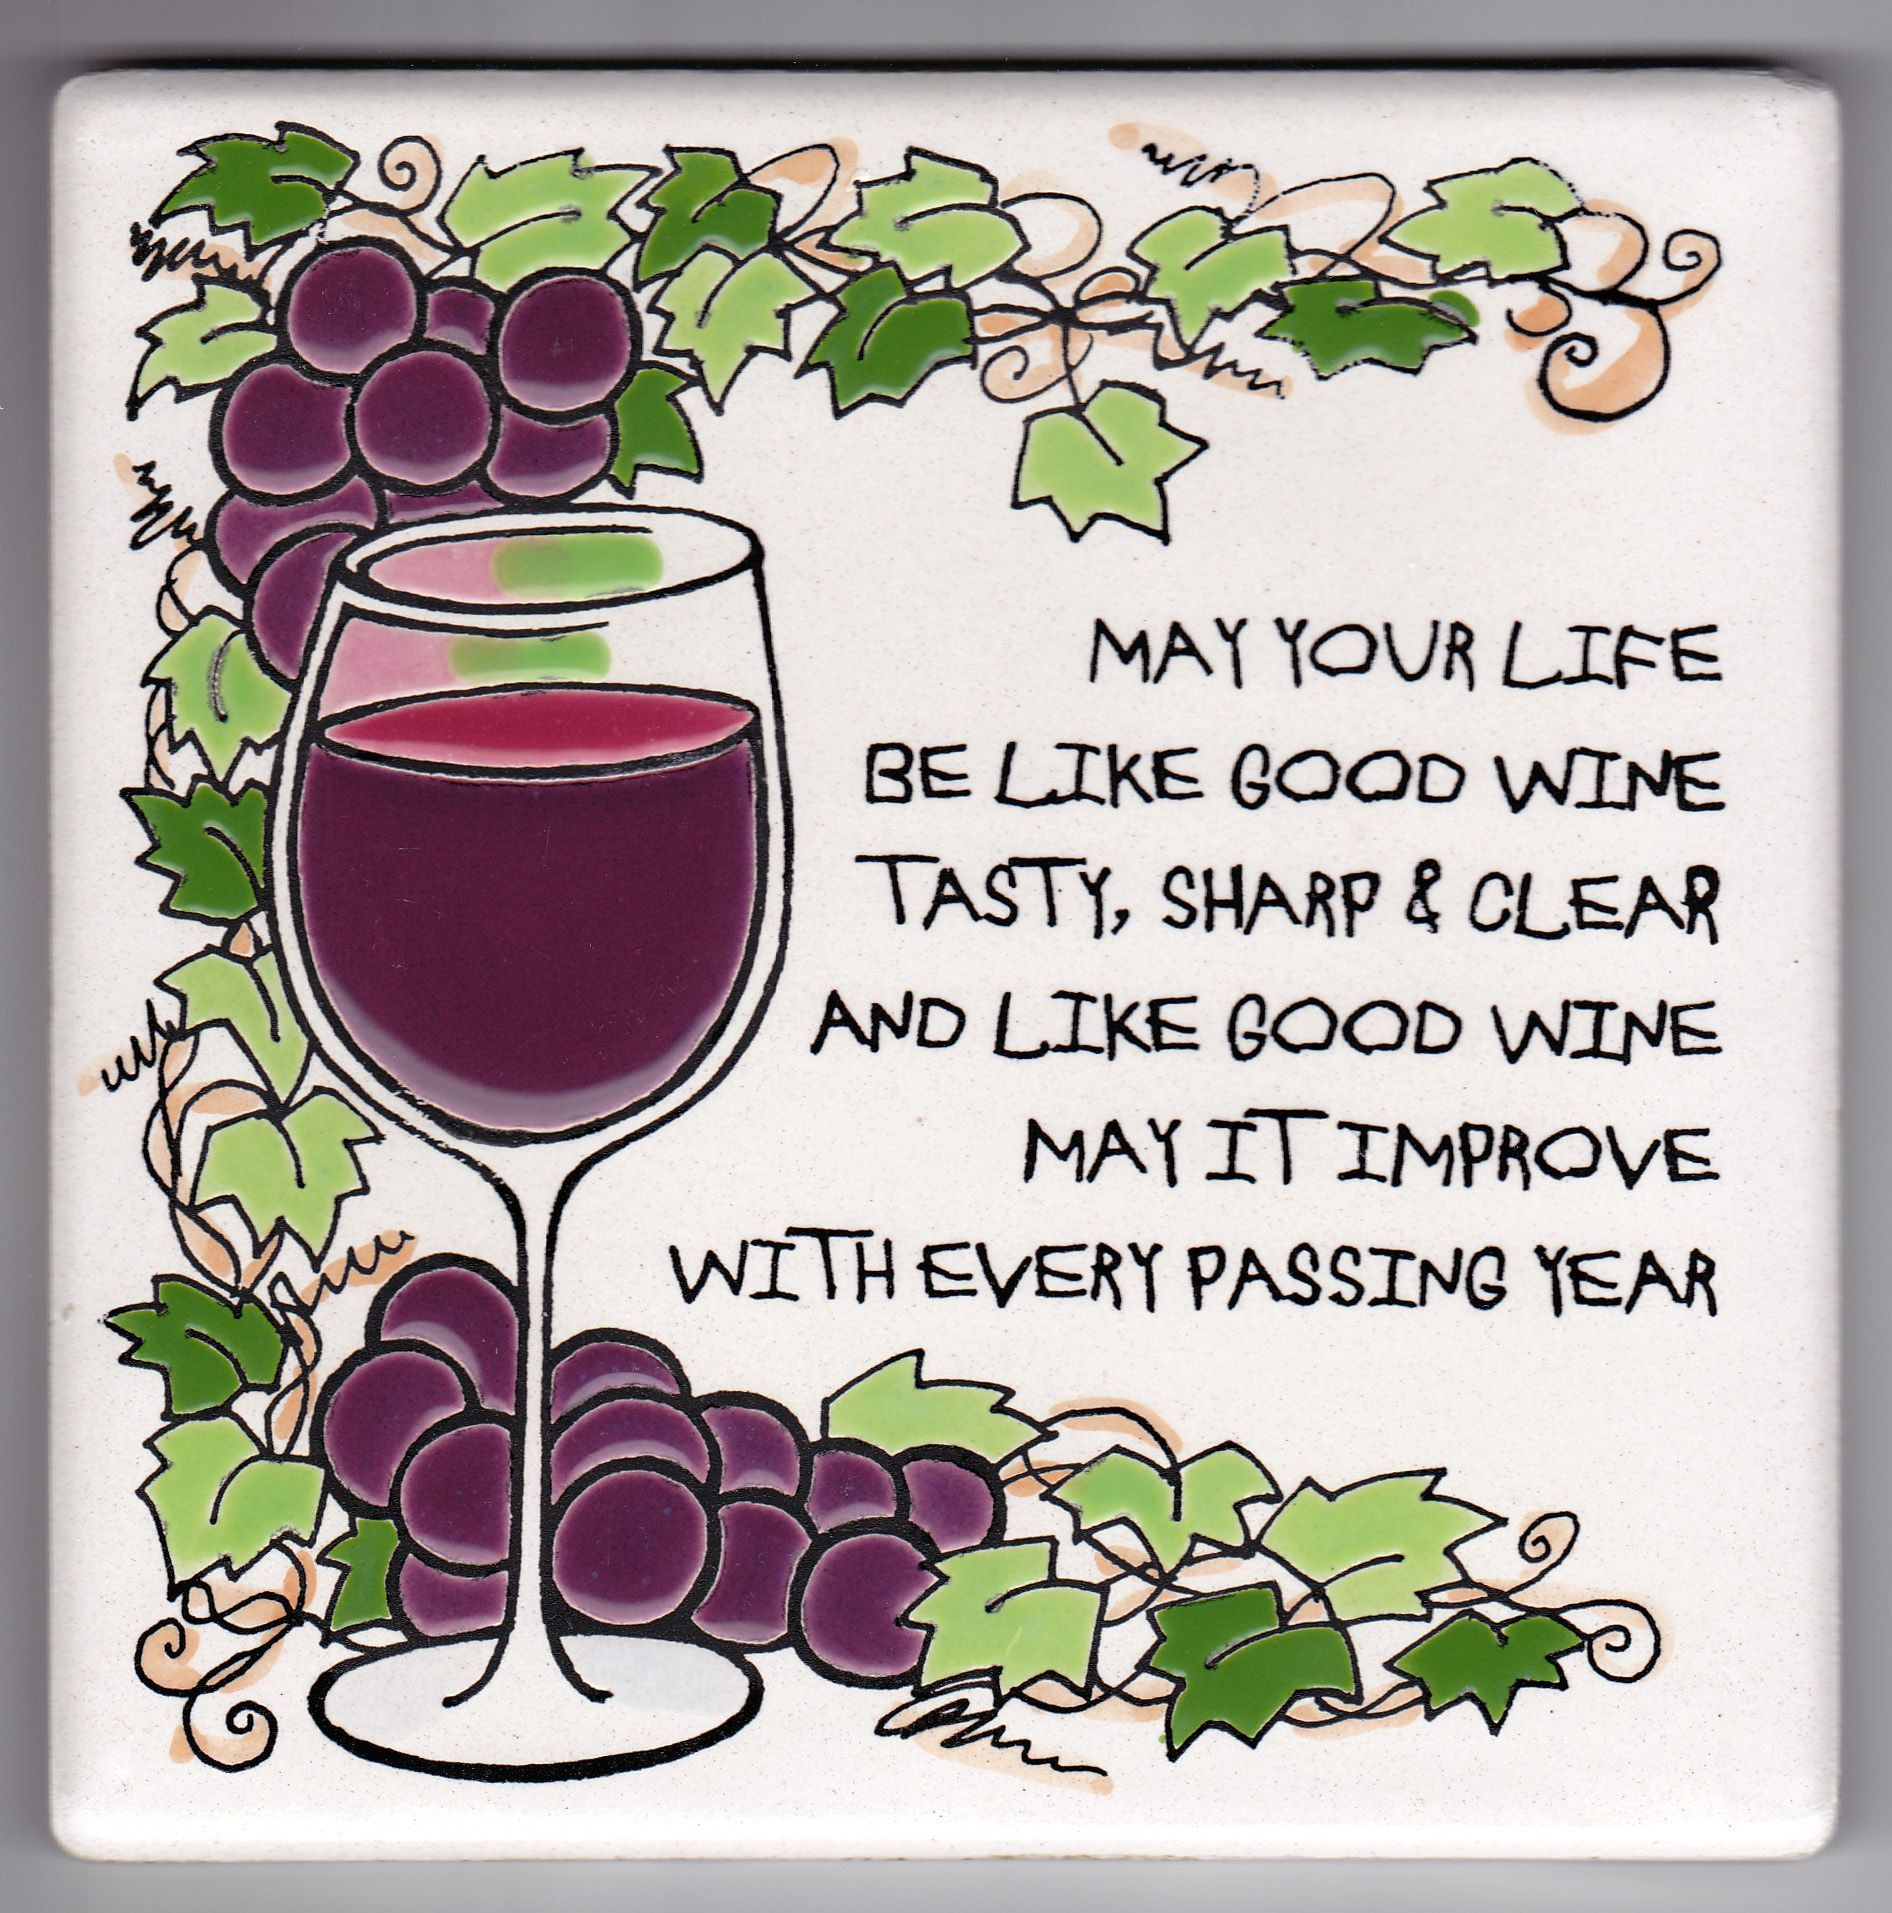 Wine And Friends Quotes Colorful Image Result For Images Of Happy Birthday To Birthday Wishes For Friend Happy 50th Birthday Wishes Birthday Message For Friend